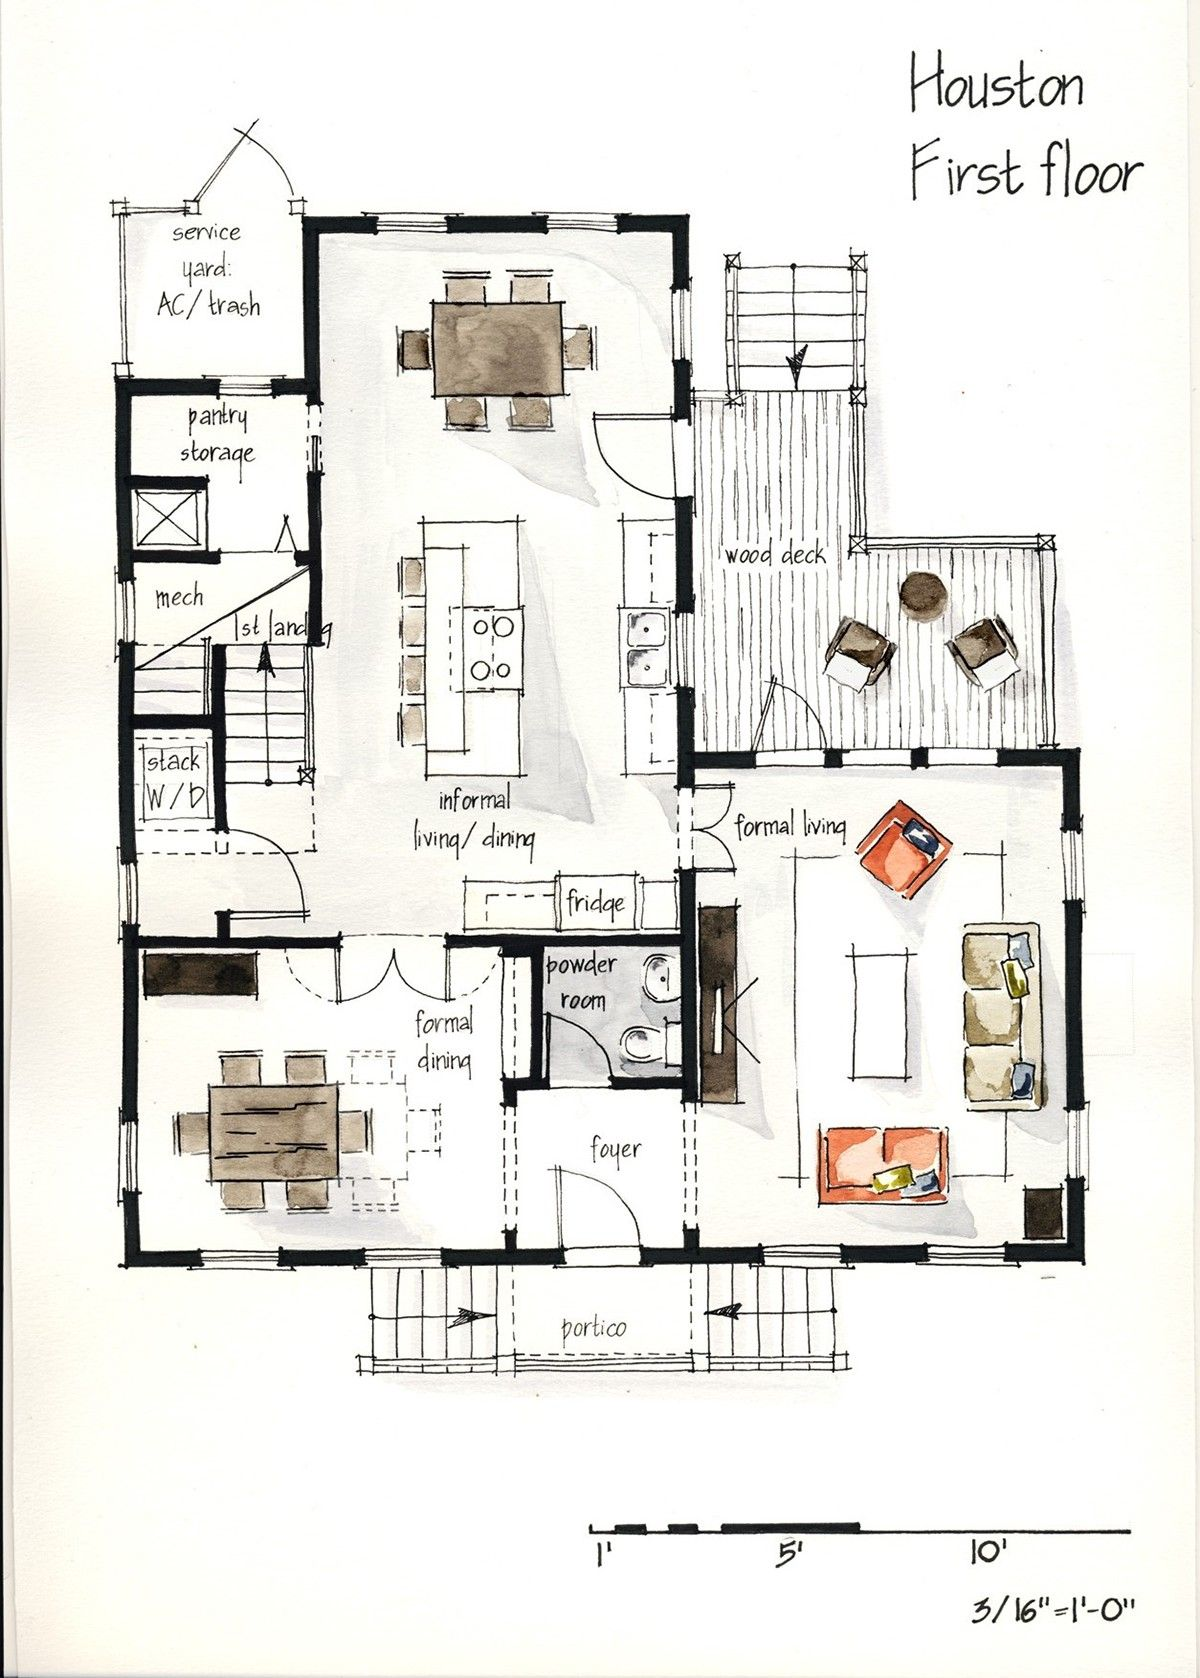 Real Estate Watercolor 2D Floor Plans Part 1 on Behance